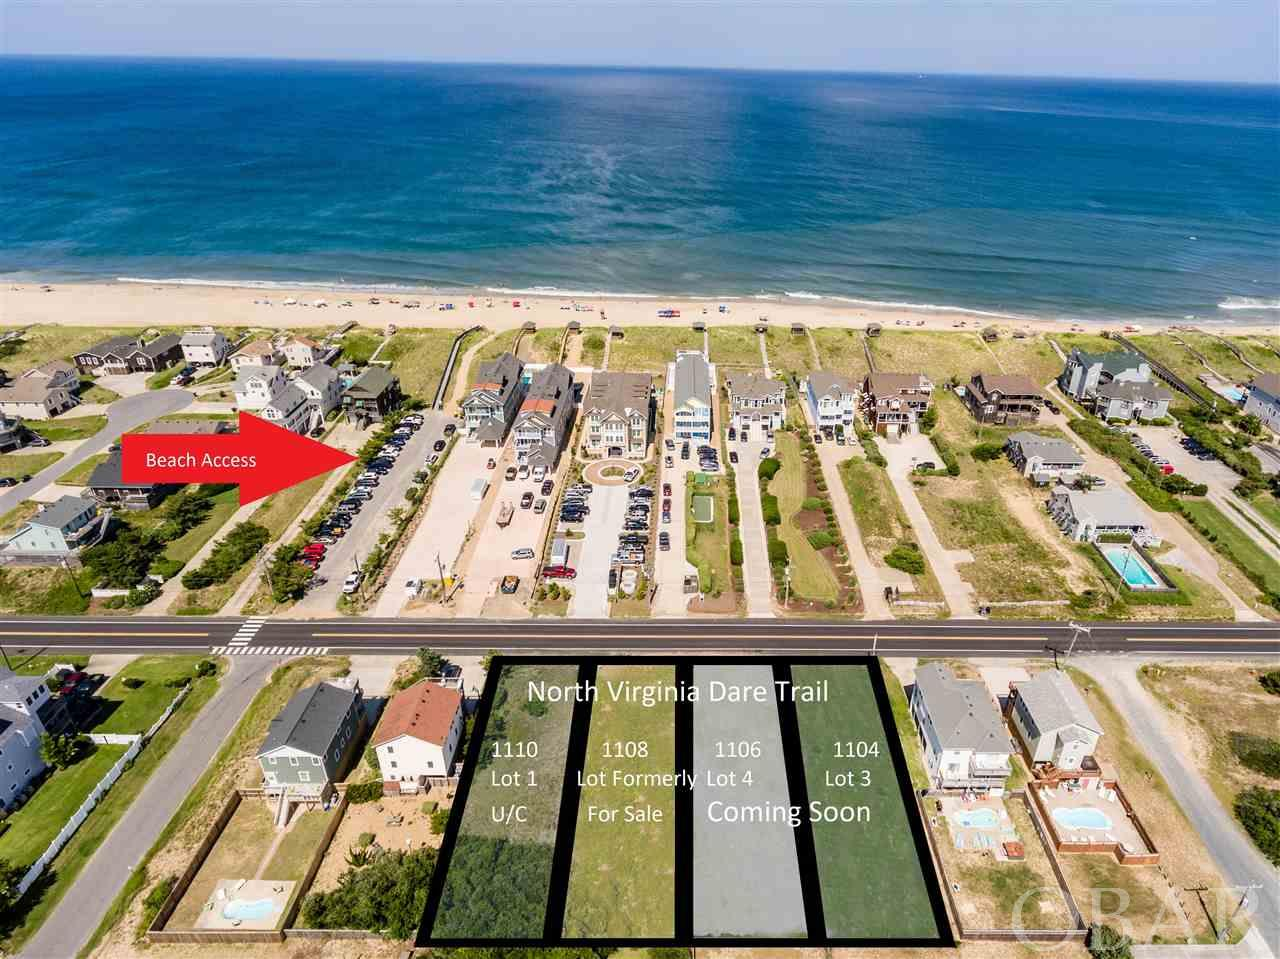 1106 Virginia Dare Trail,Kill Devil Hills,NC 27948,8 Bedrooms Bedrooms,9 BathroomsBathrooms,Residential,Virginia Dare Trail,100824